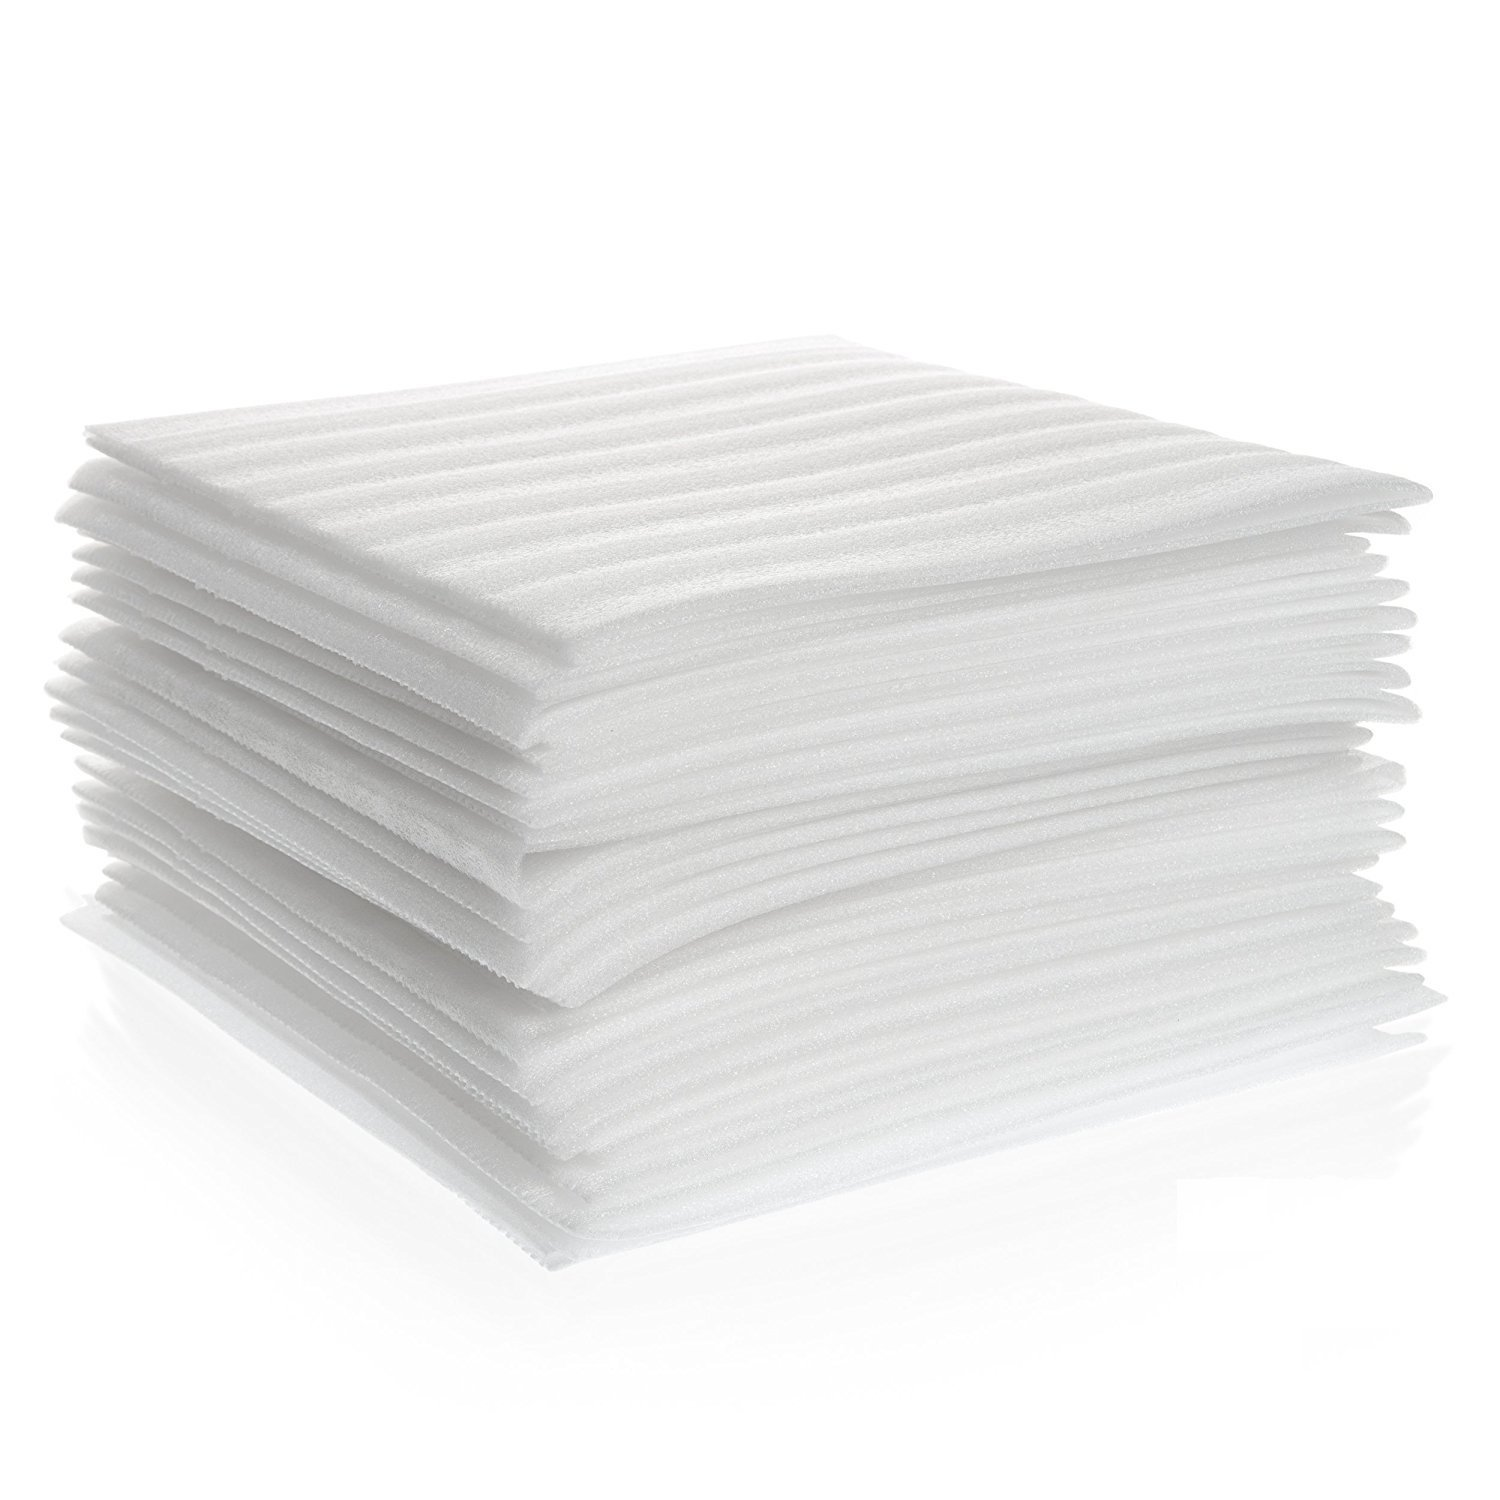 Packing Cushion Foam Sheets for Moving: Cushion Wrap Sheets as Packing Paper and Moving Supplies (50 Pack)